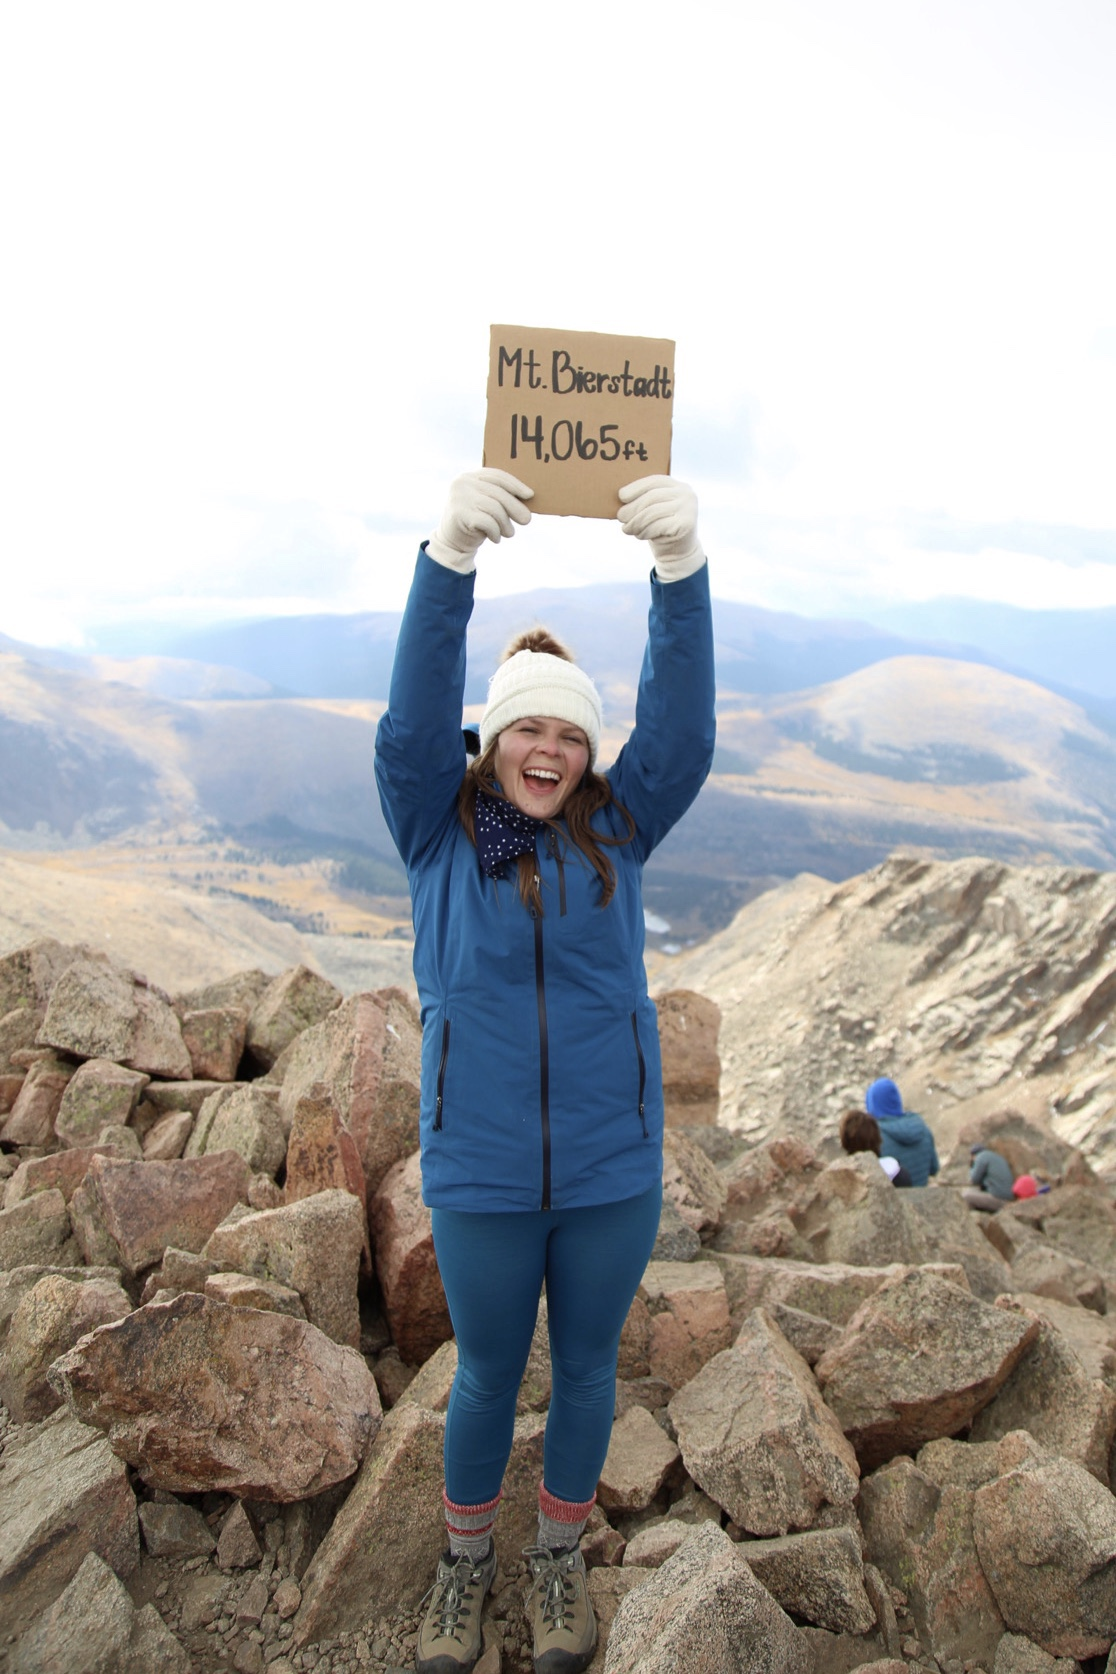 Hiking My First 14er in Colorado: Packing Guide and Essential Tips